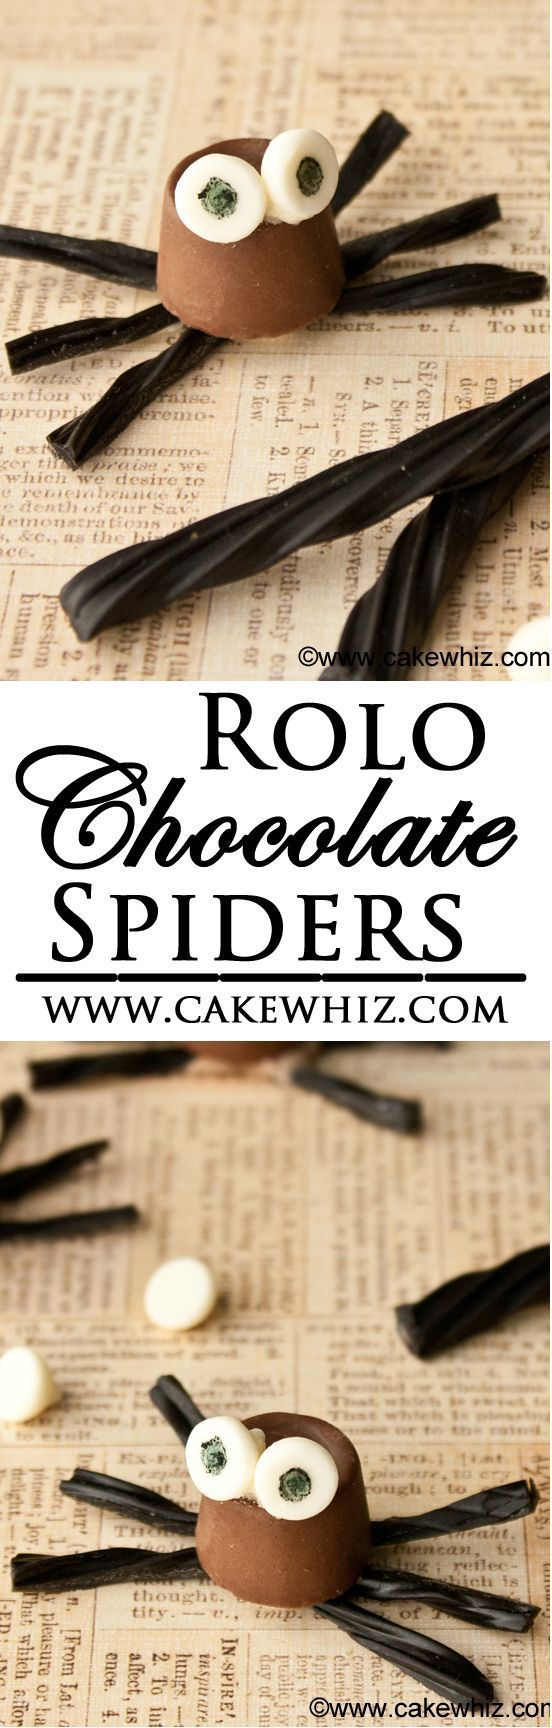 These cute ROLO CHOCOLATE SPIDERS are a fun and easy Halloween treat that you can make with kids! You just need some store bought candies and edible markers. From cakewhiz.com